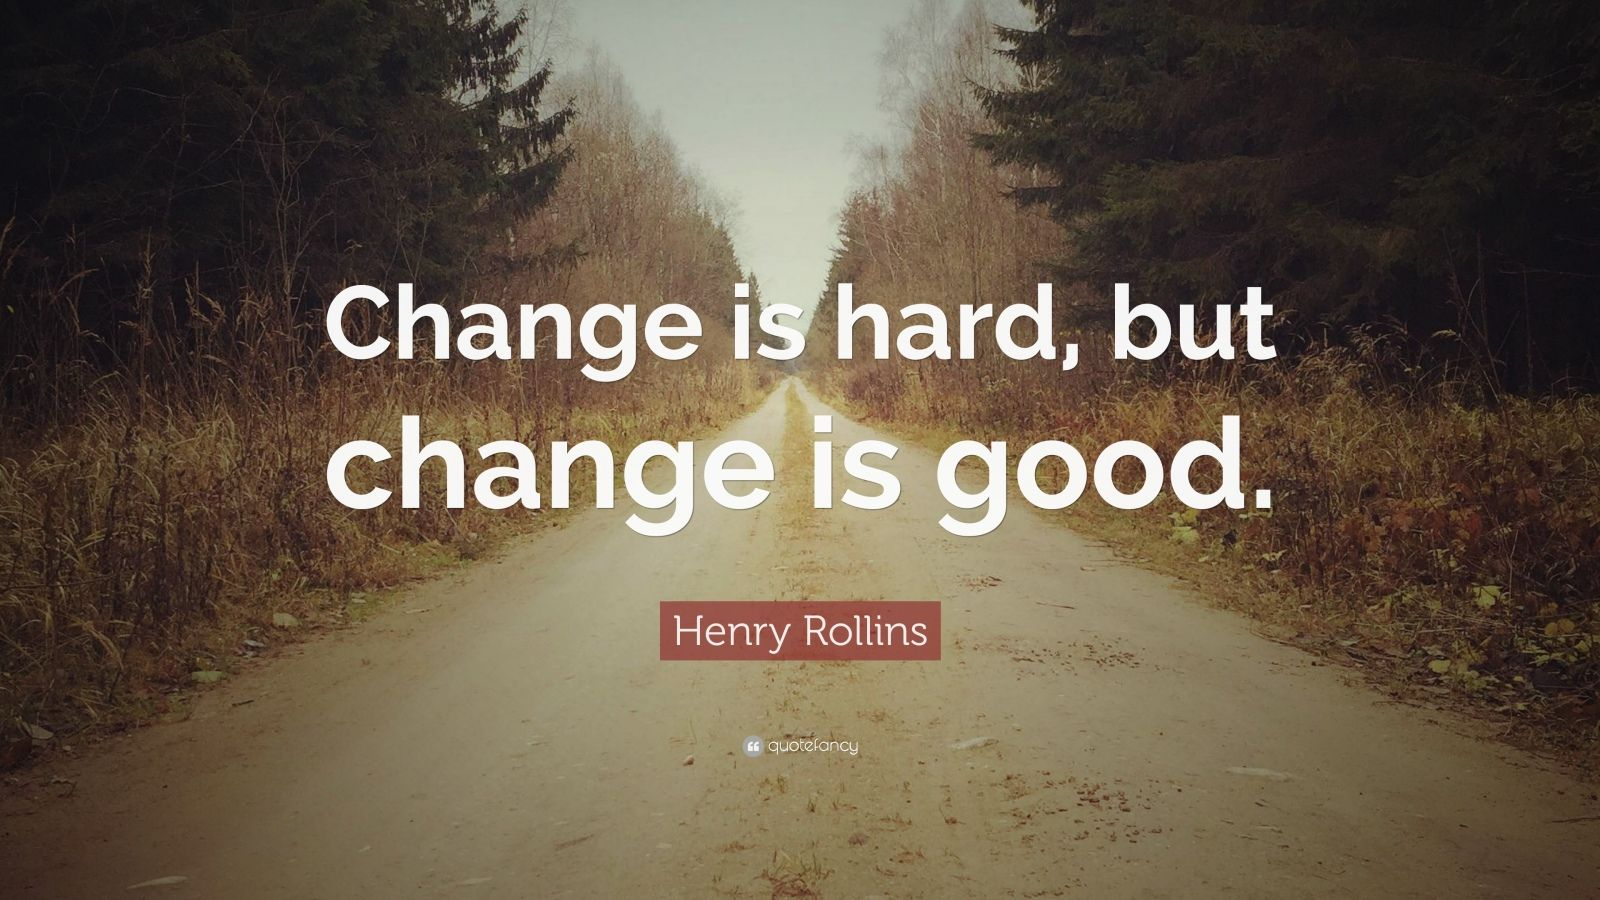 Hd Bible Quotes Wallpapers Henry Rollins Quote Change Is Hard But Change Is Good